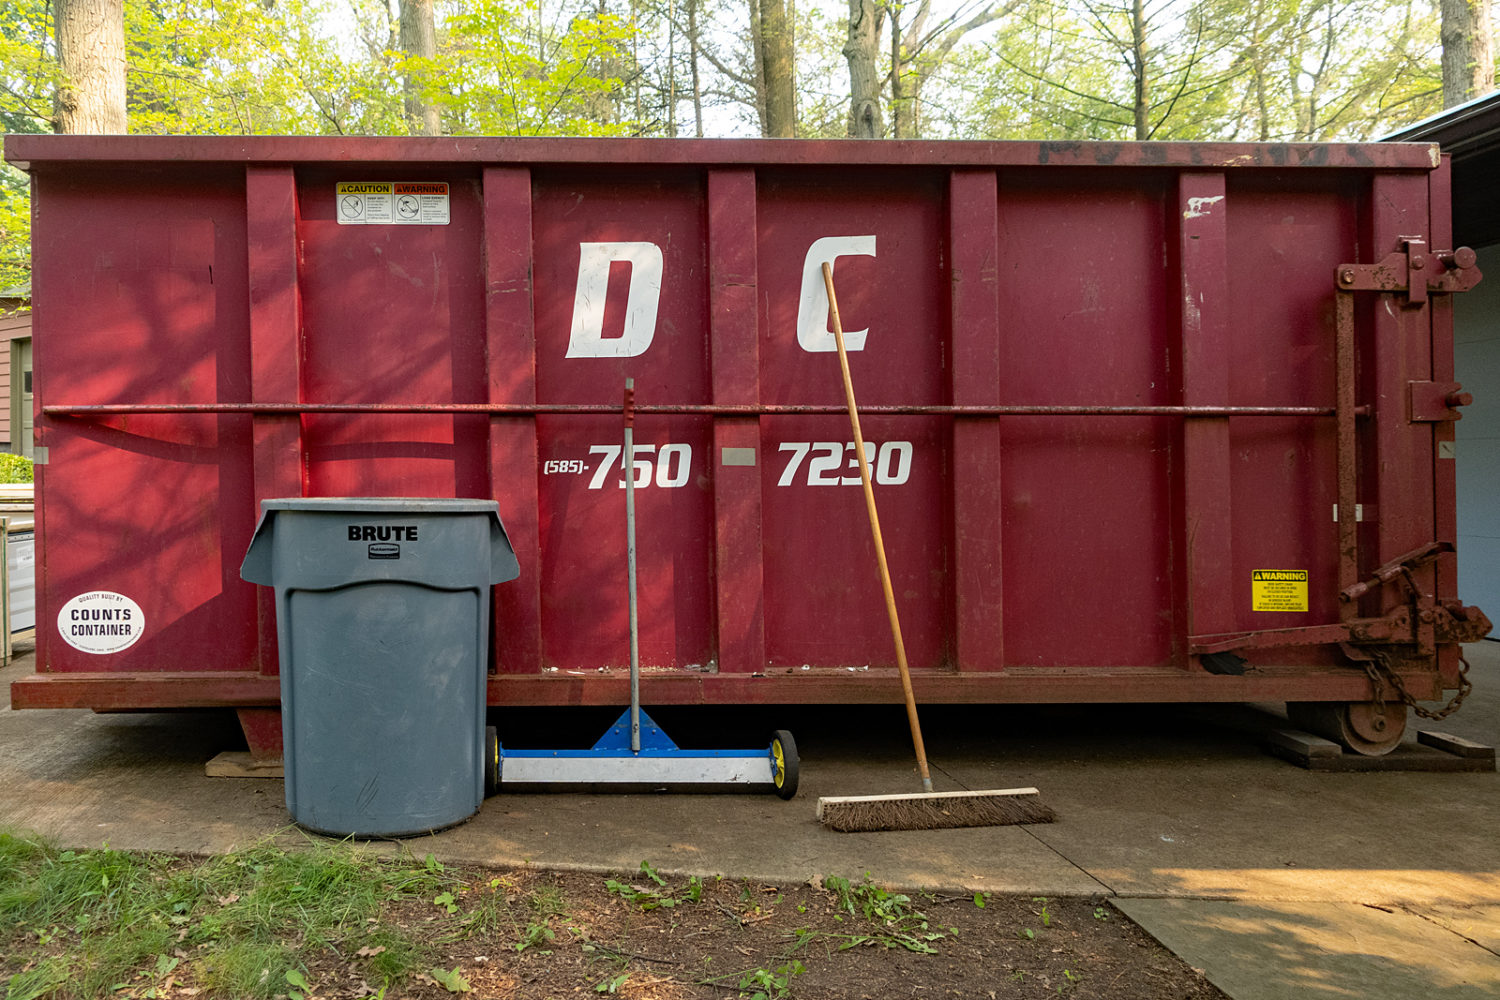 Dumpster in our driveway